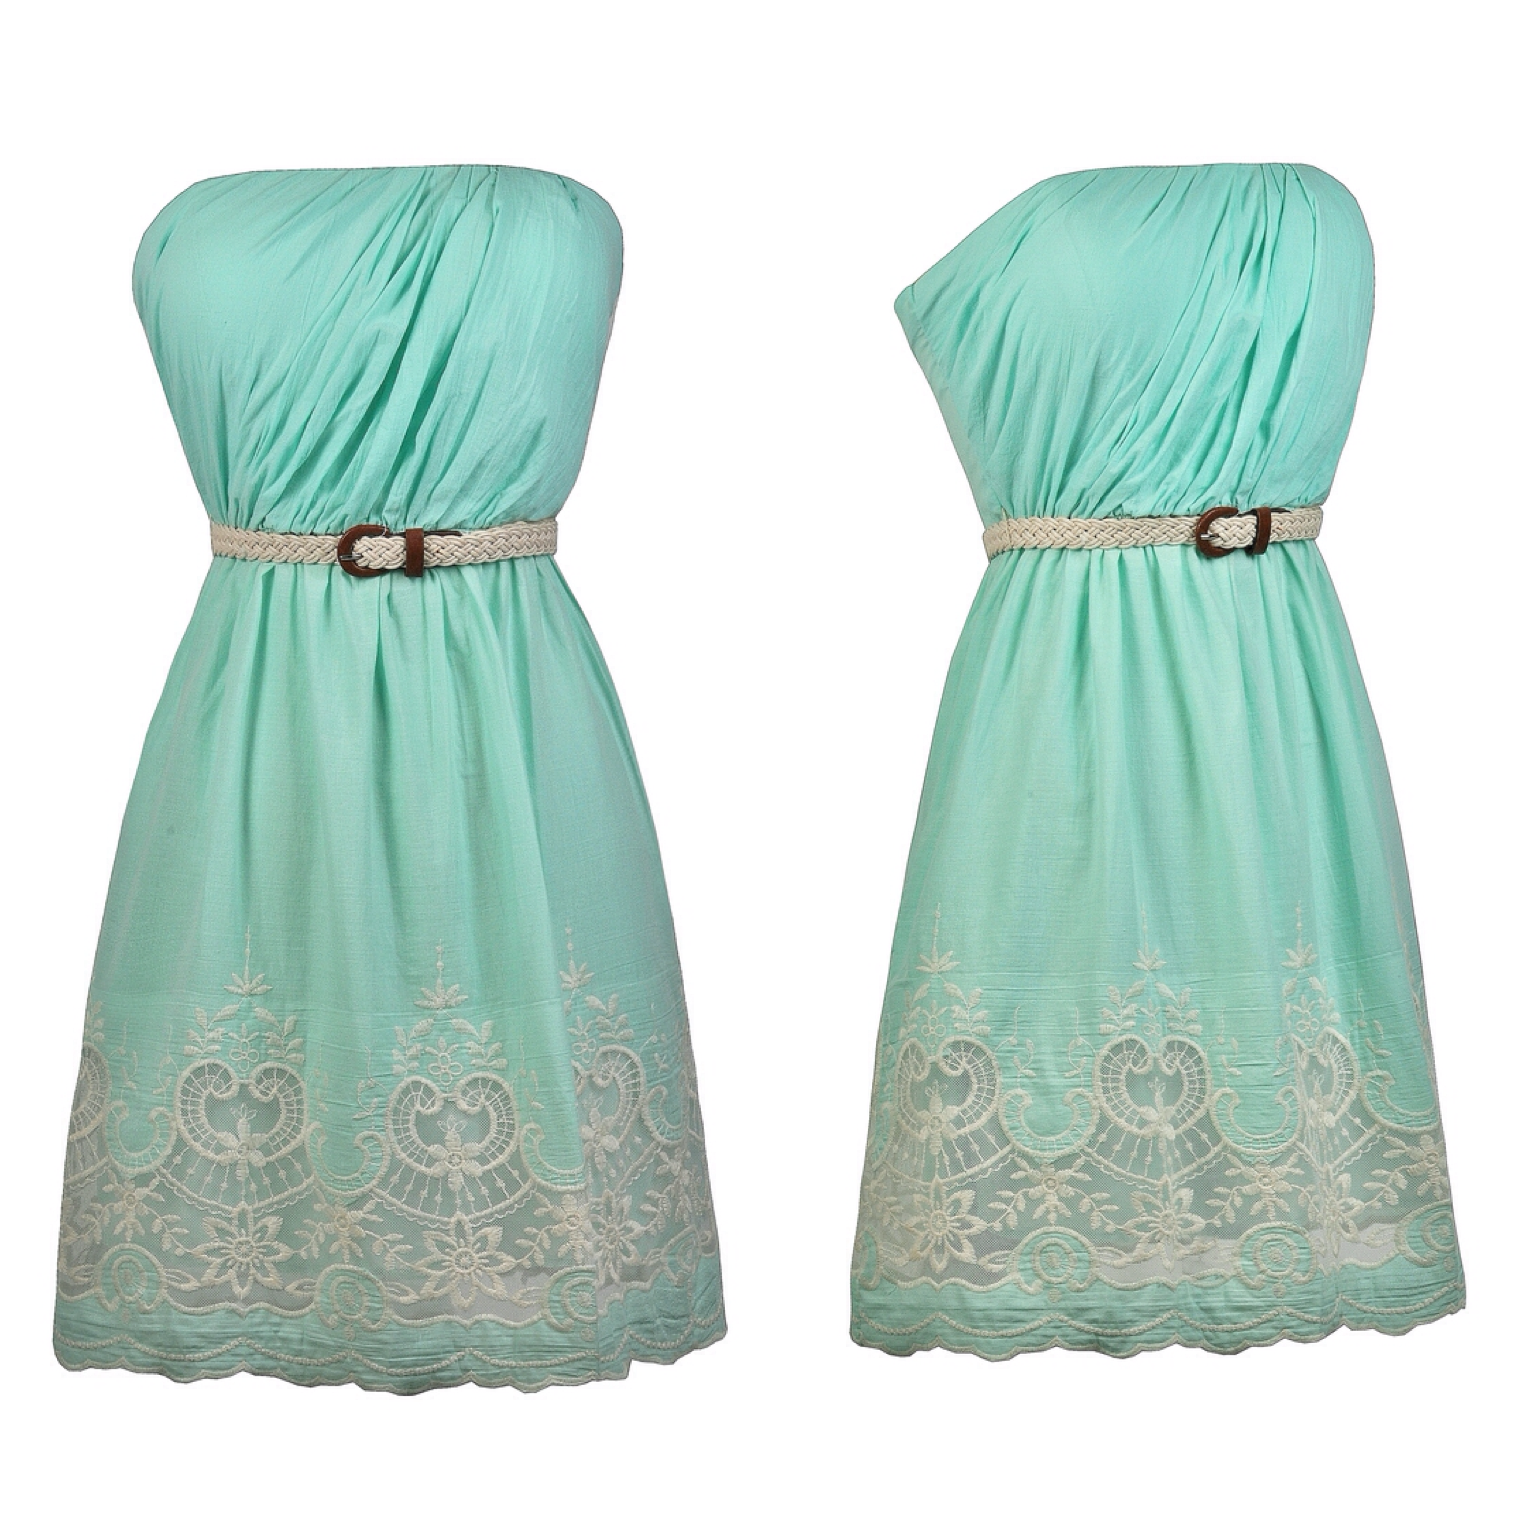 This belted and embroidered dress is perfect to pack on vacation ...